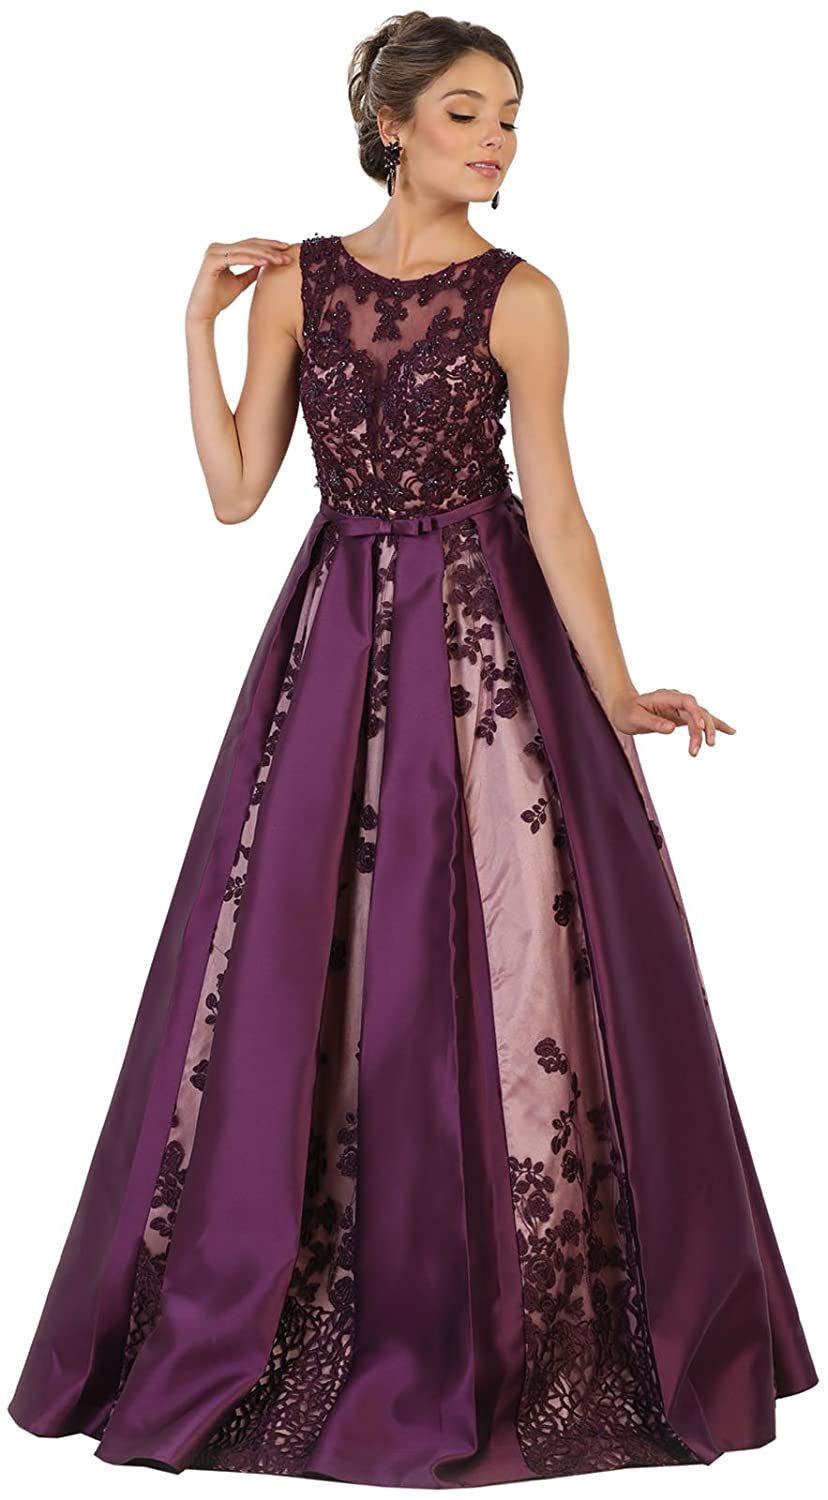 Royal Queen RQ7516 Marine Corps Ball Formal Gown at Amazon Womens Clothing store: